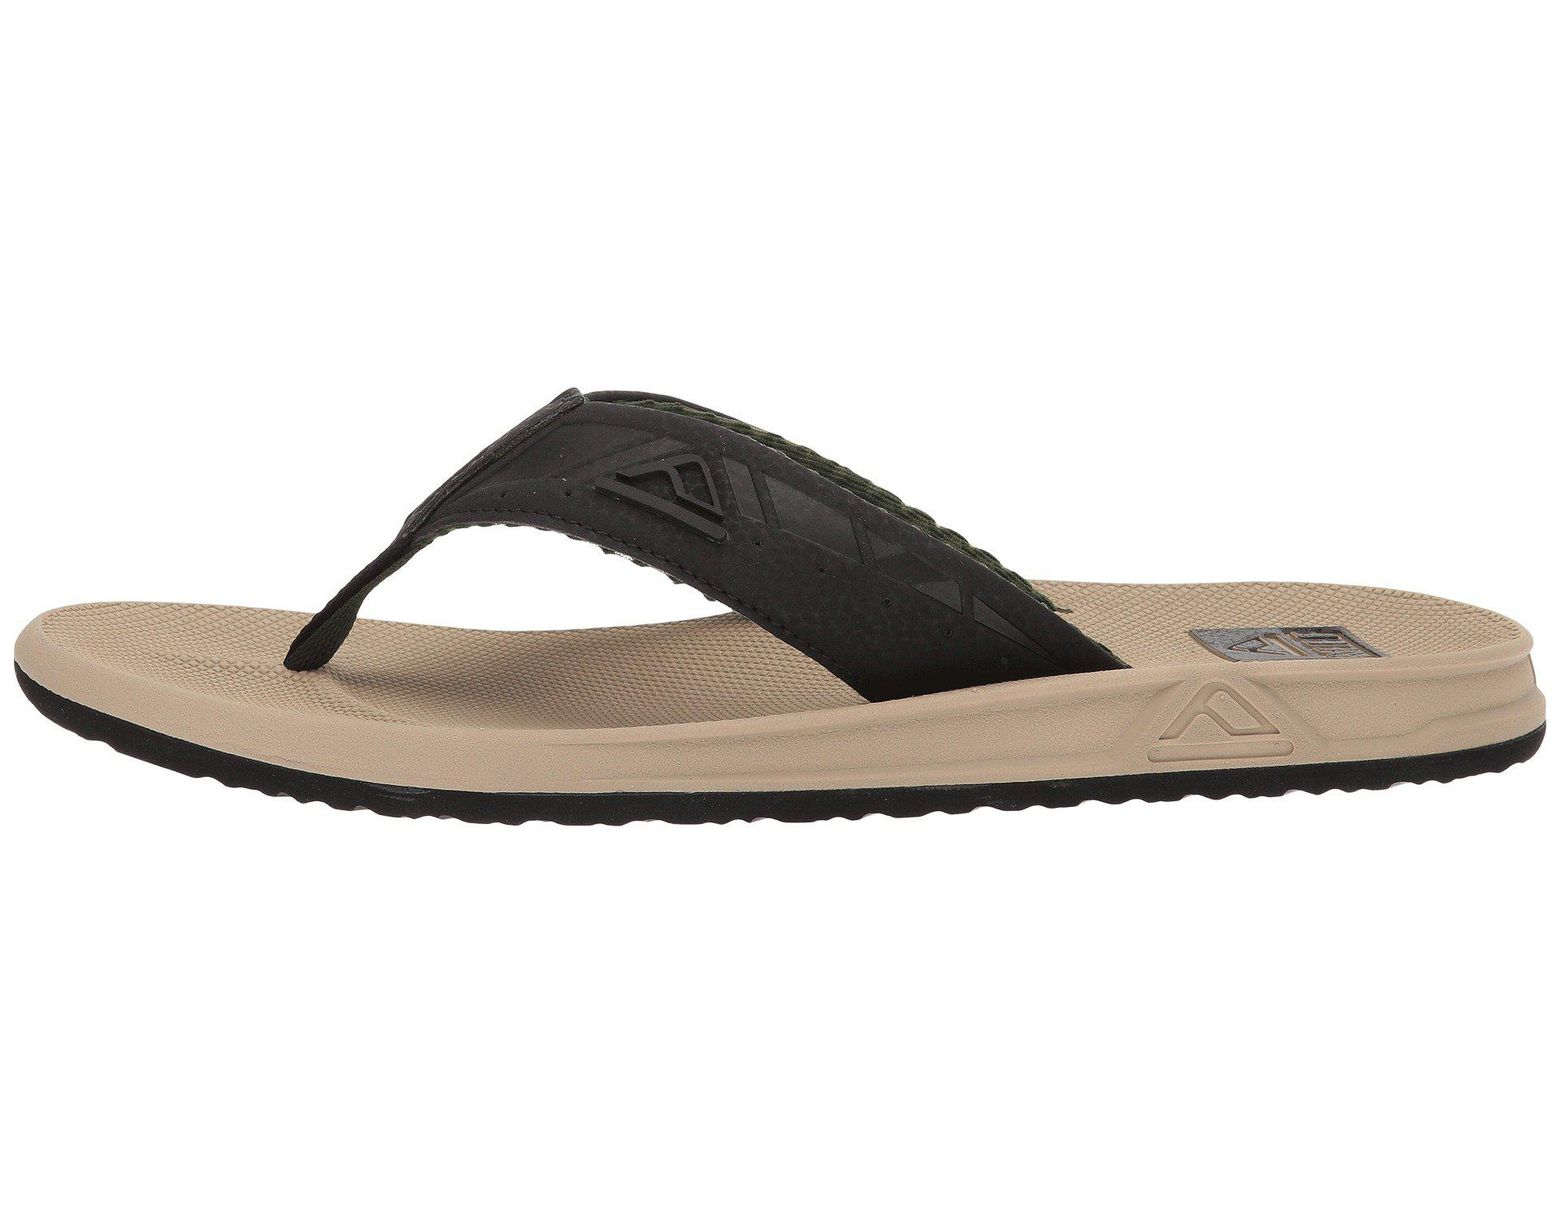 0a0eb9a499cf3 Reef Phantoms (black/tan 2) Men's Sandals in Black for Men - Lyst